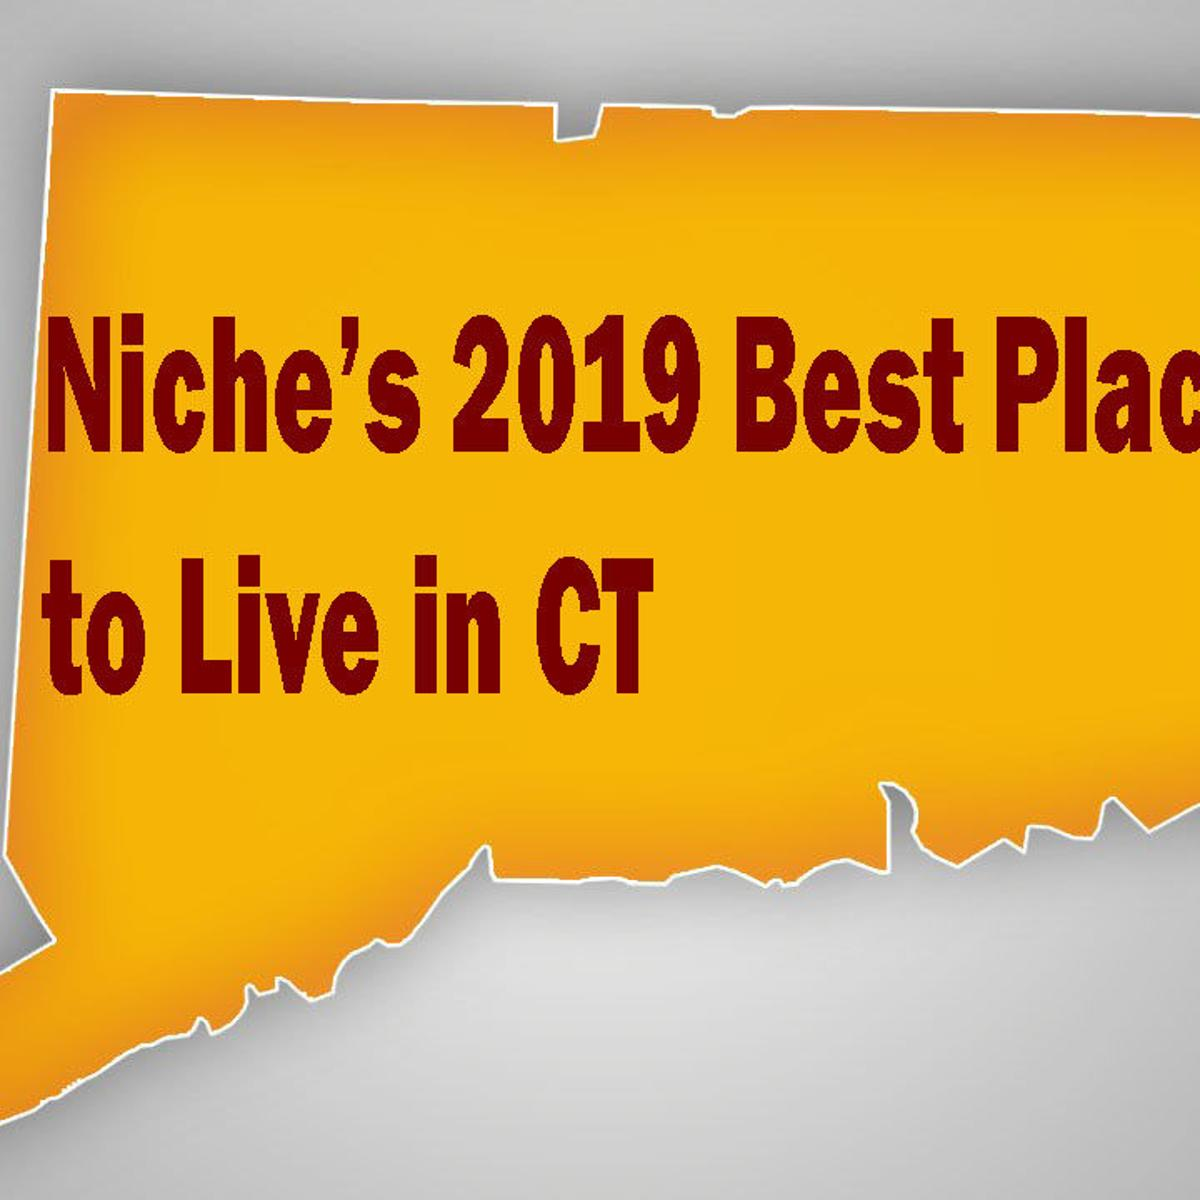 Educational website releases list of 'Best Places to Live in